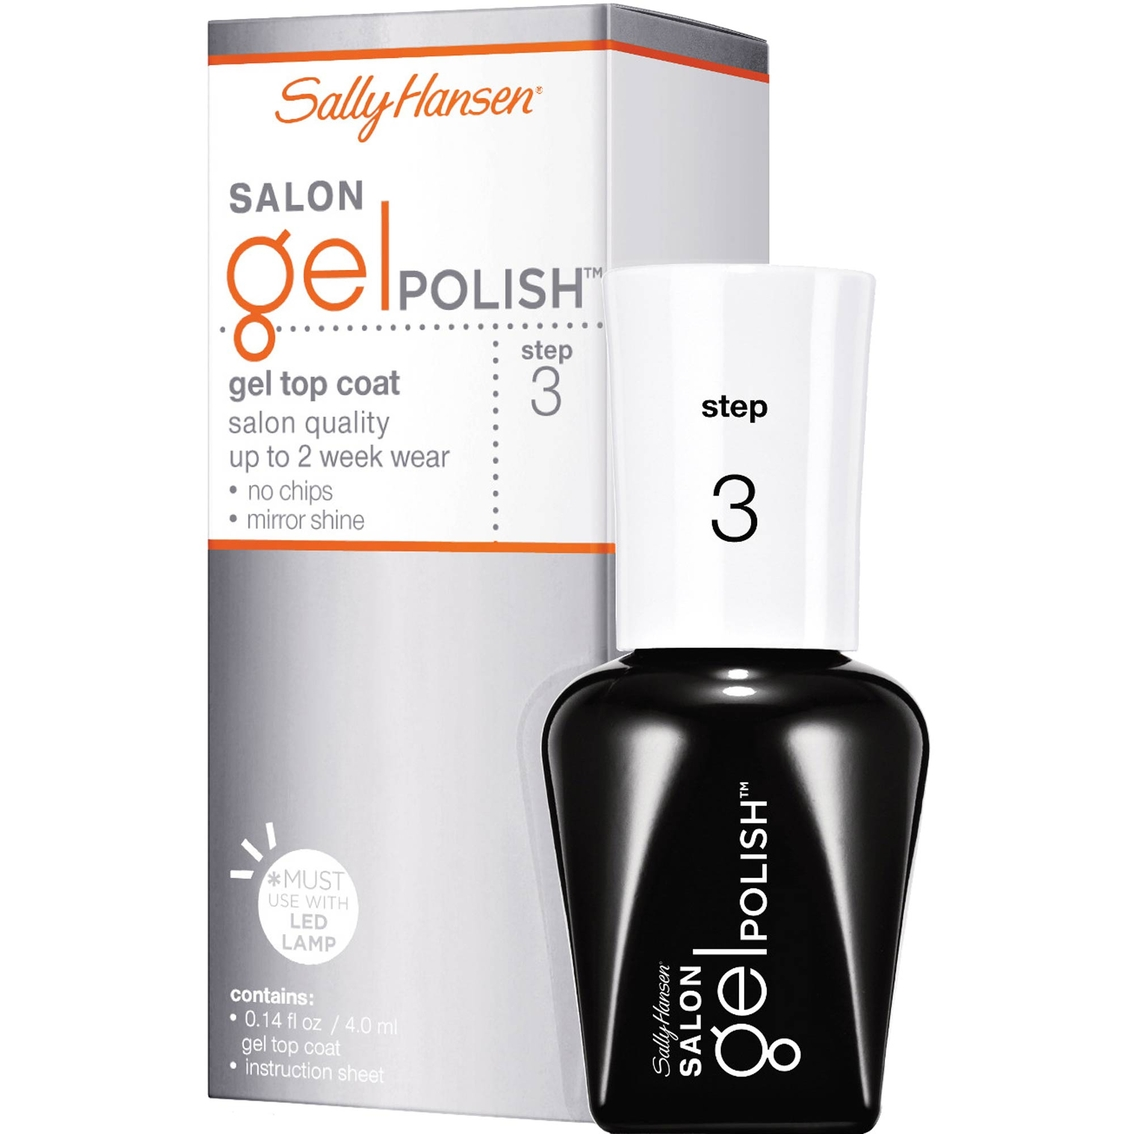 Sally Hansen Salon Pro Gel Nail Polish: Sally Hansen Salon Gel Polish Gel Top Coat